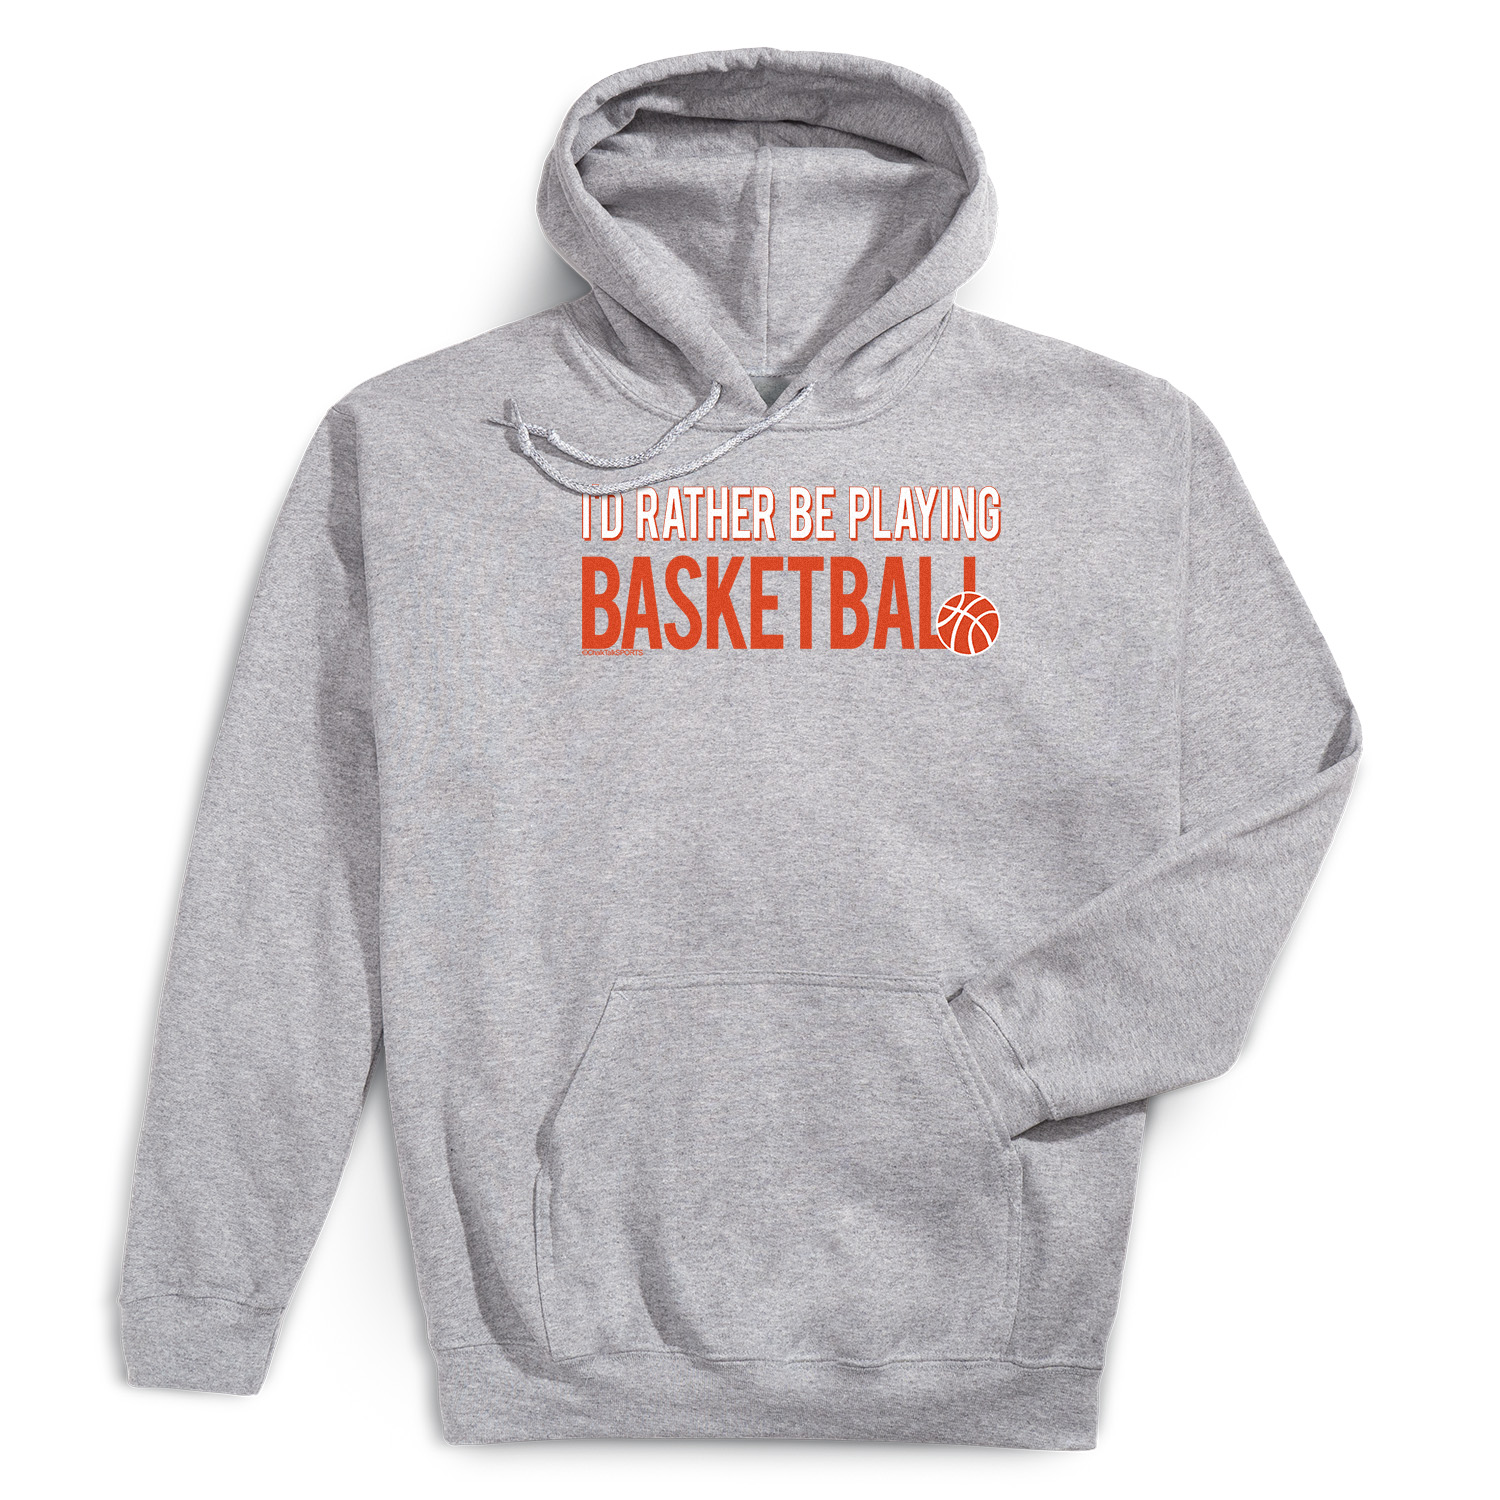 Basketball Hooded Sweatshirt - I'd Rather Be Playing Basketball - Personalization Image